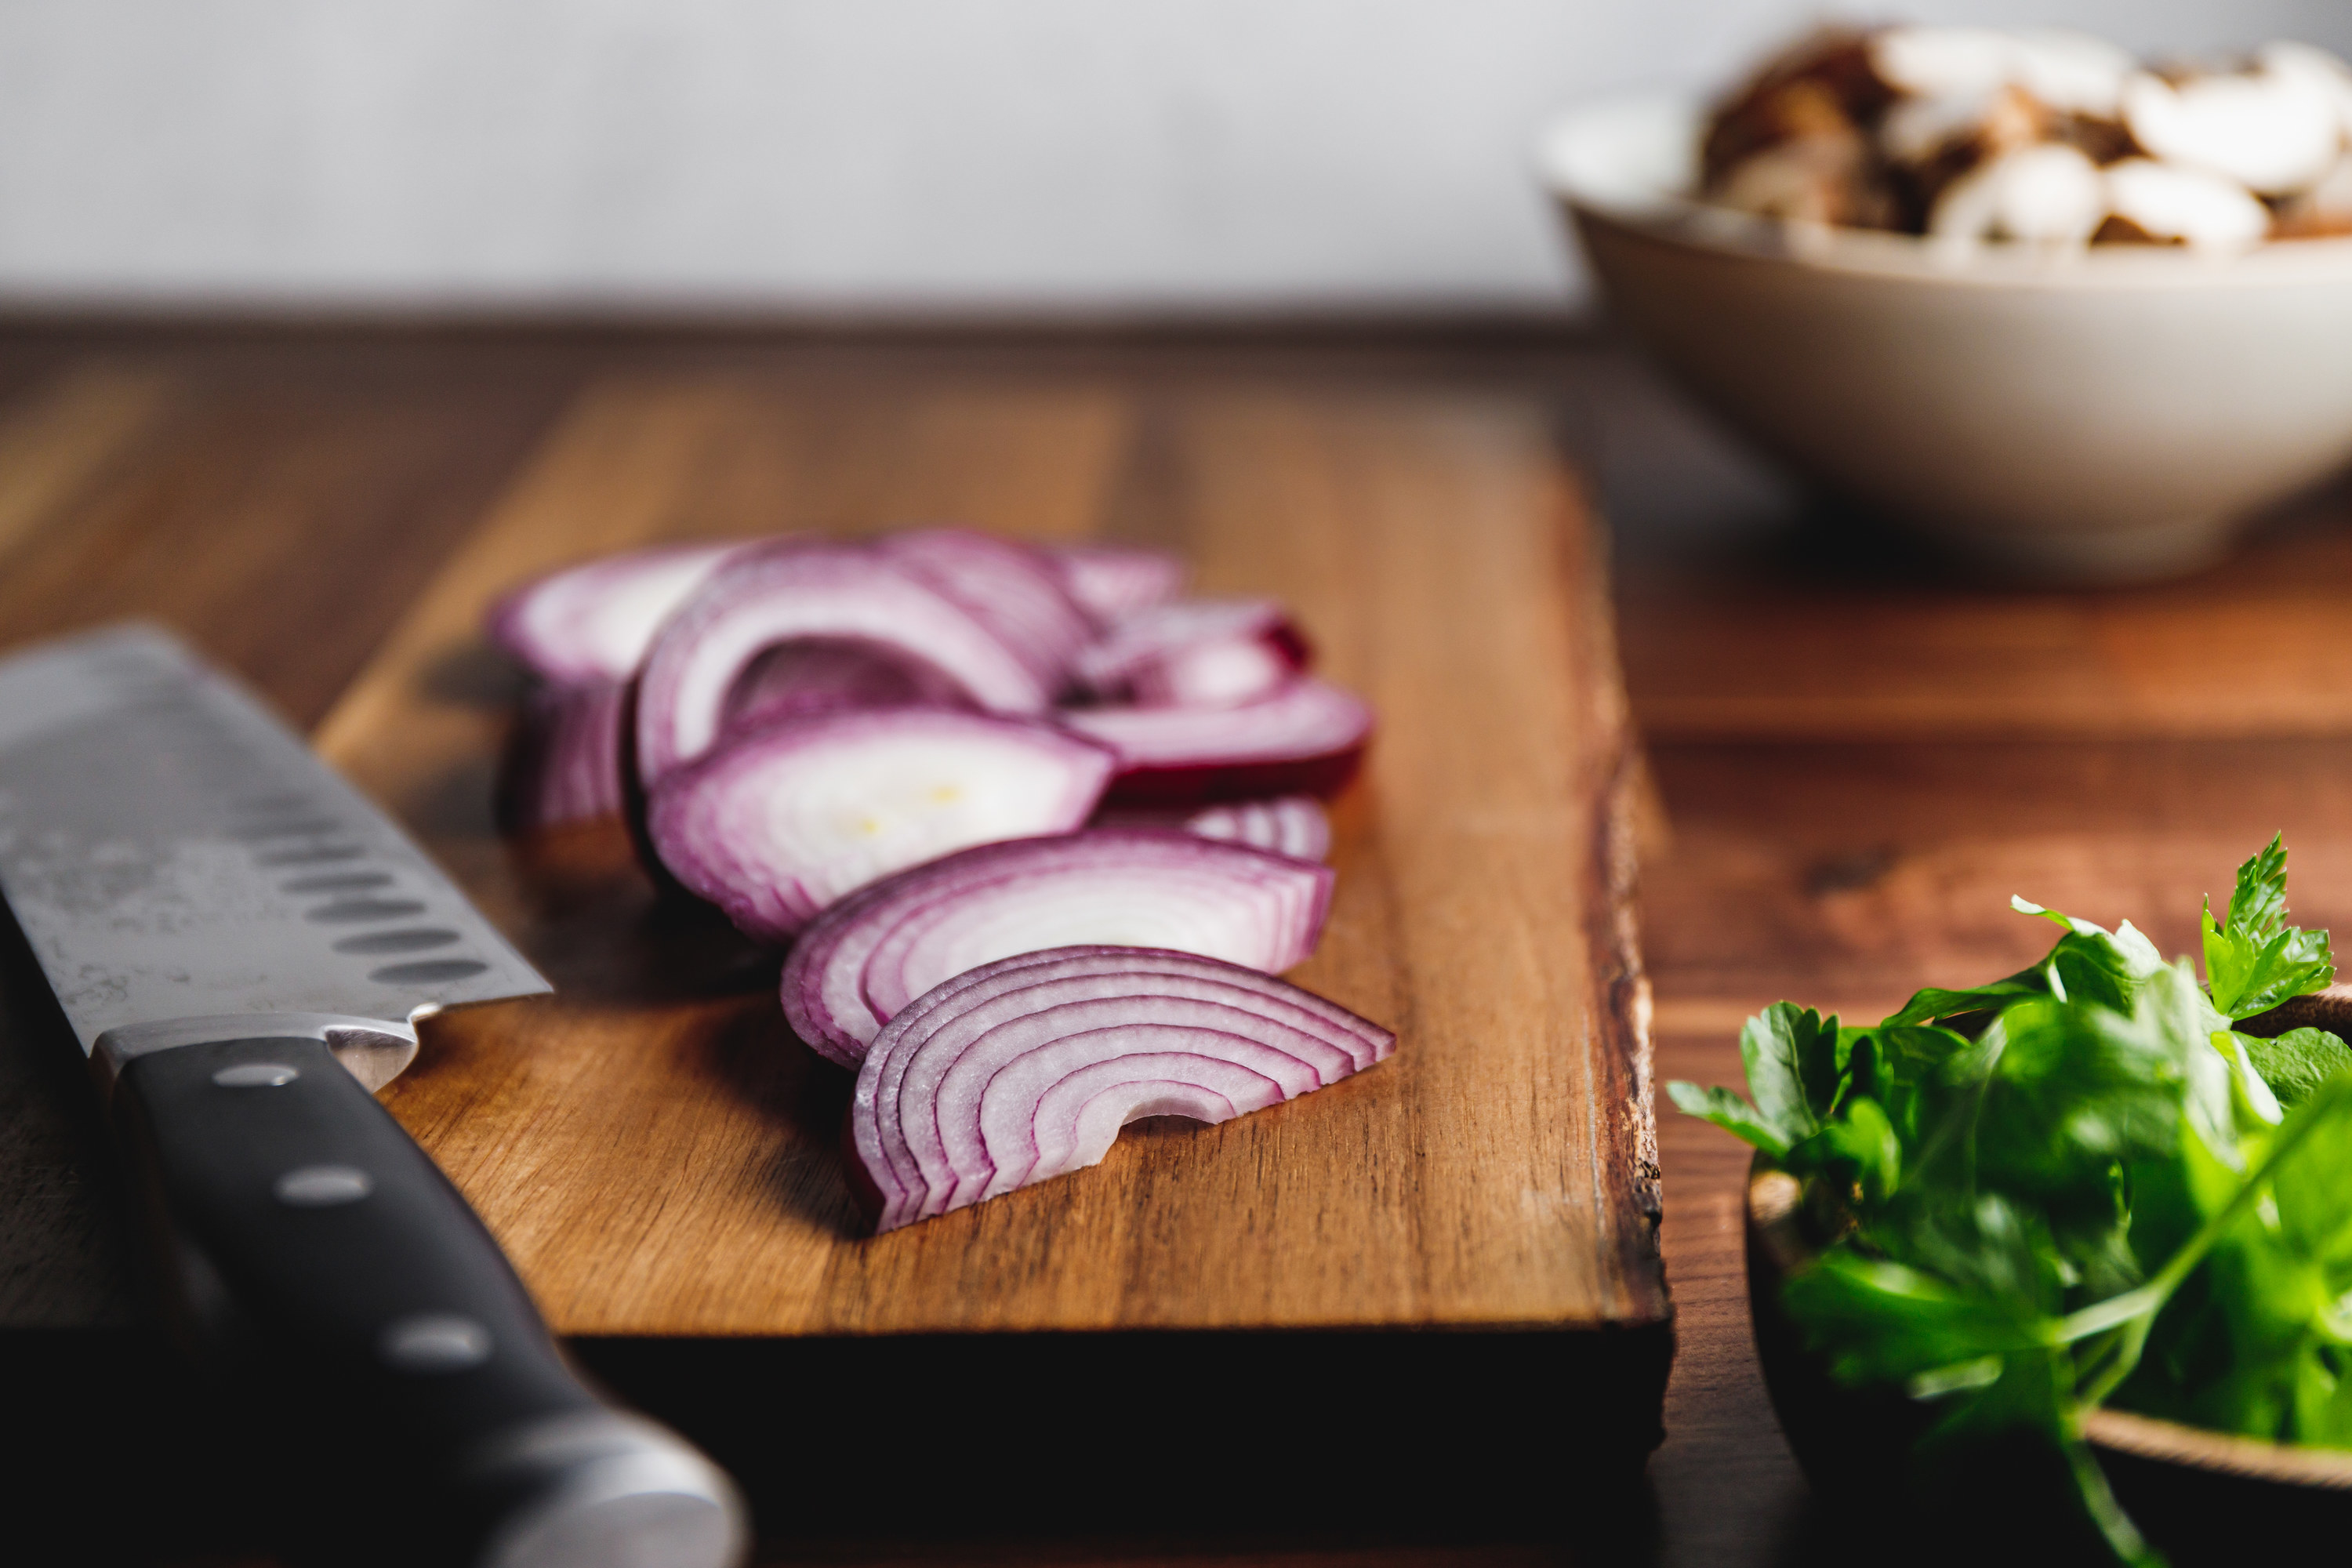 Purple onions chopped on a cutting board next to a knife, mint, and mushrooms